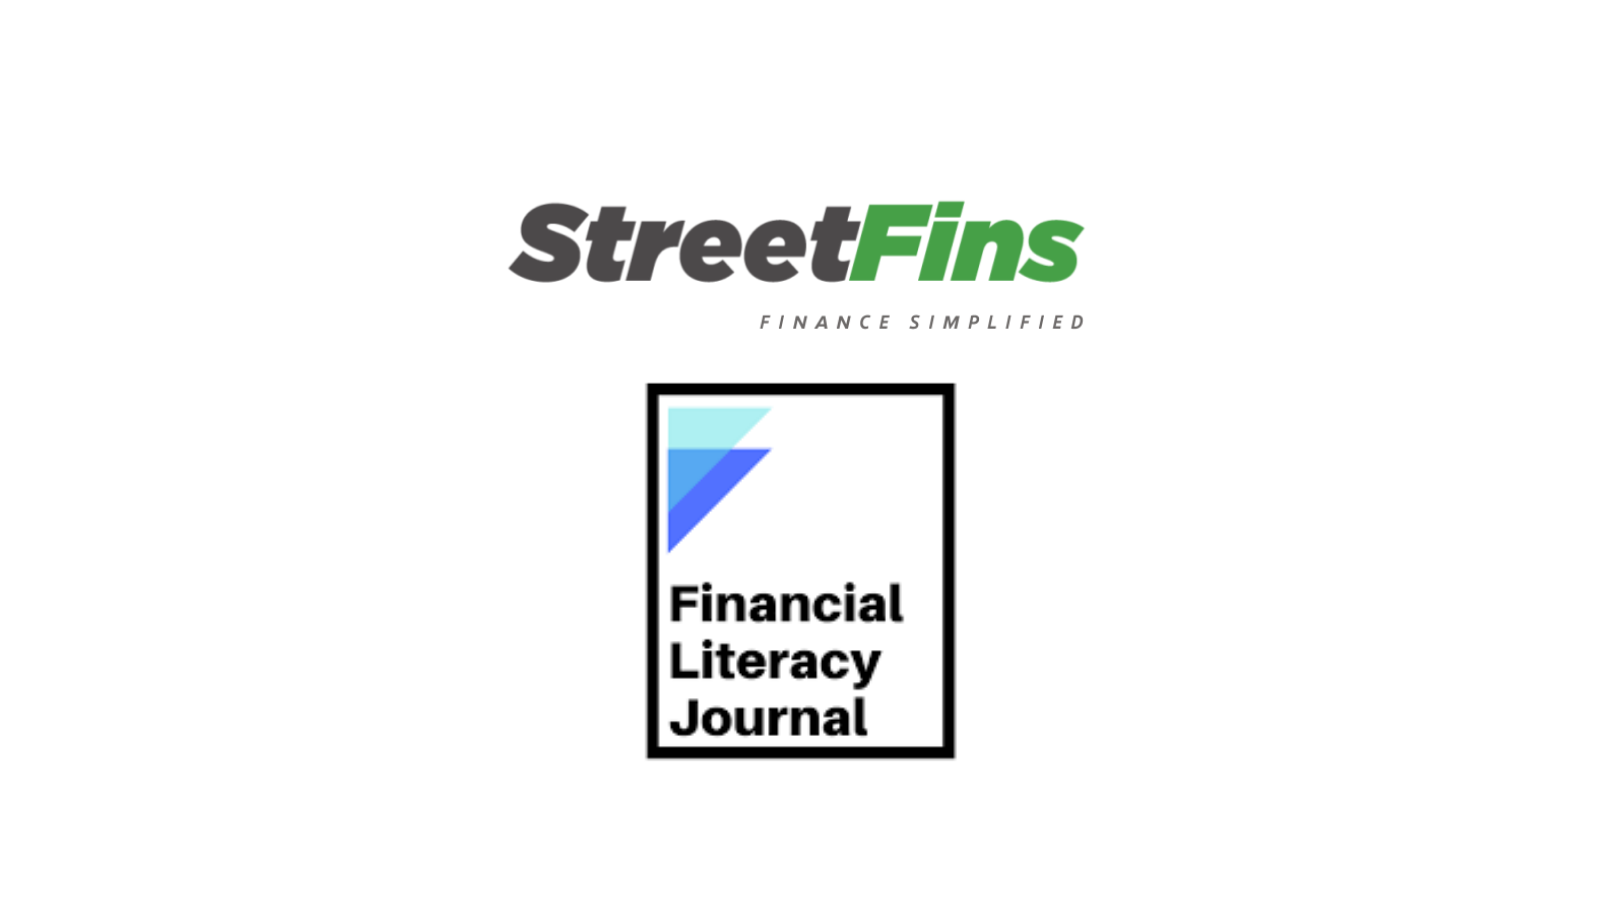 StreetFins and Financial Literacy Journal Merge